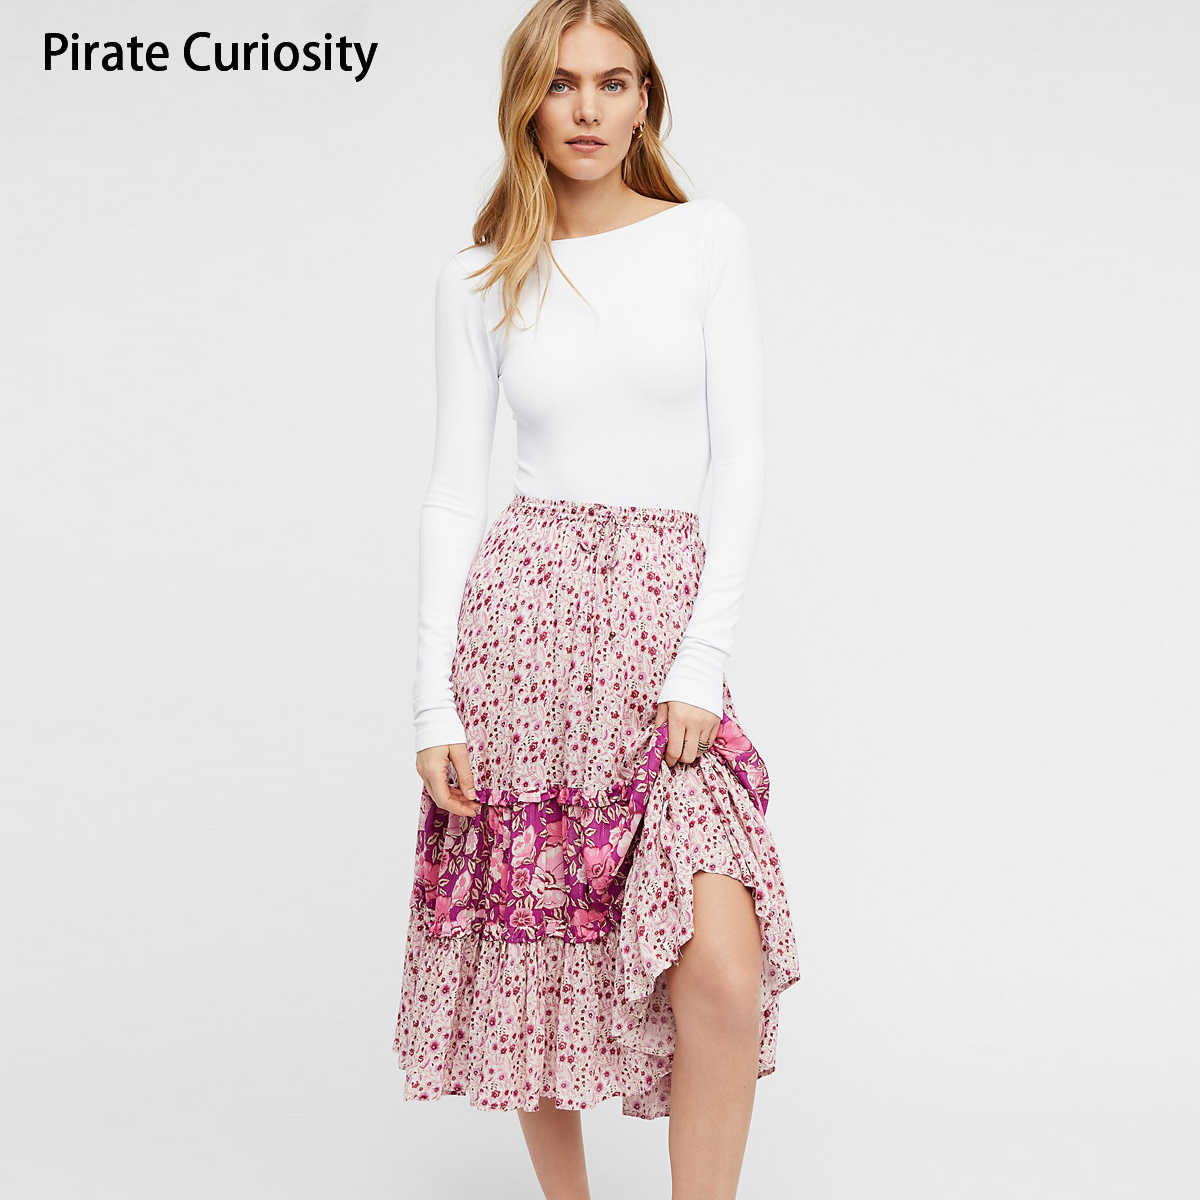 c89be97a0d ... Pirate Curiosity Rayon Winona Colorful Print Floral Skirts For Women  Summer Midi Skirt Vintage Bohemian Beach ...